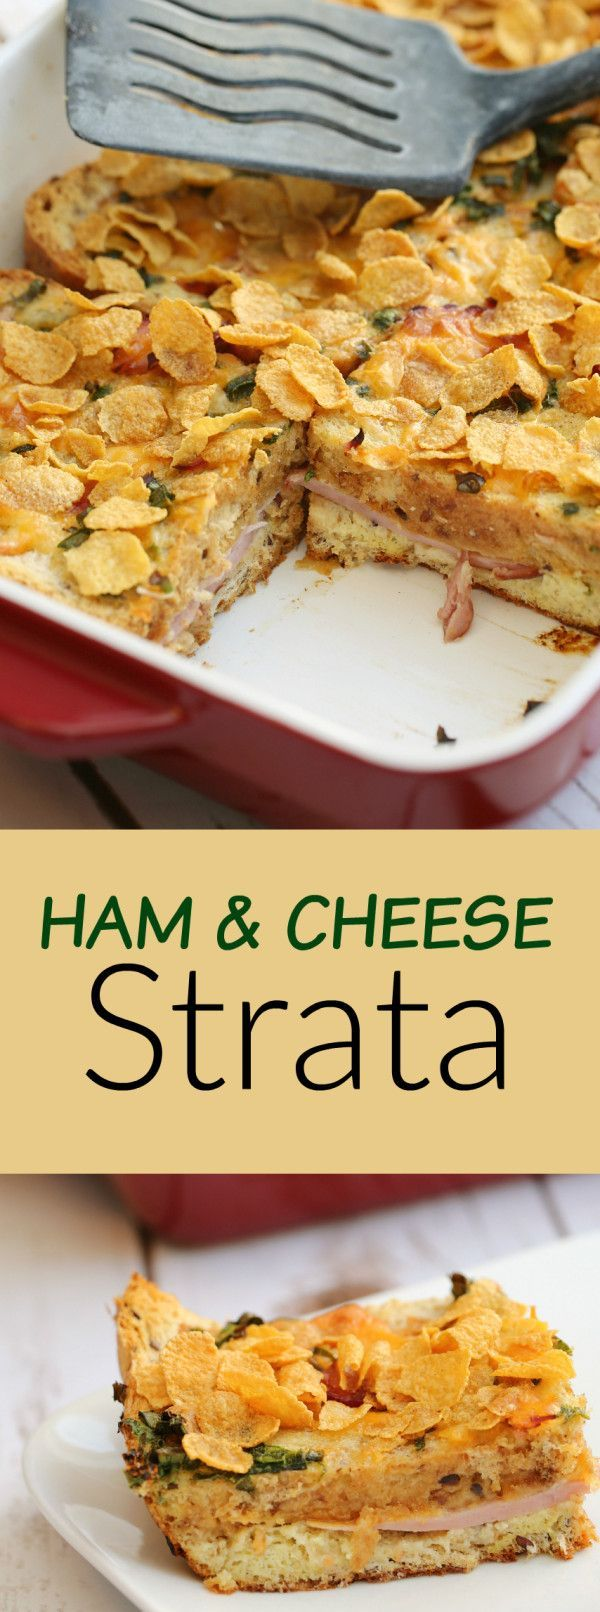 ham cheese brunch casserole a brunch recipe with whole grain bread eggs - Cheese Strata Recipes Brunch